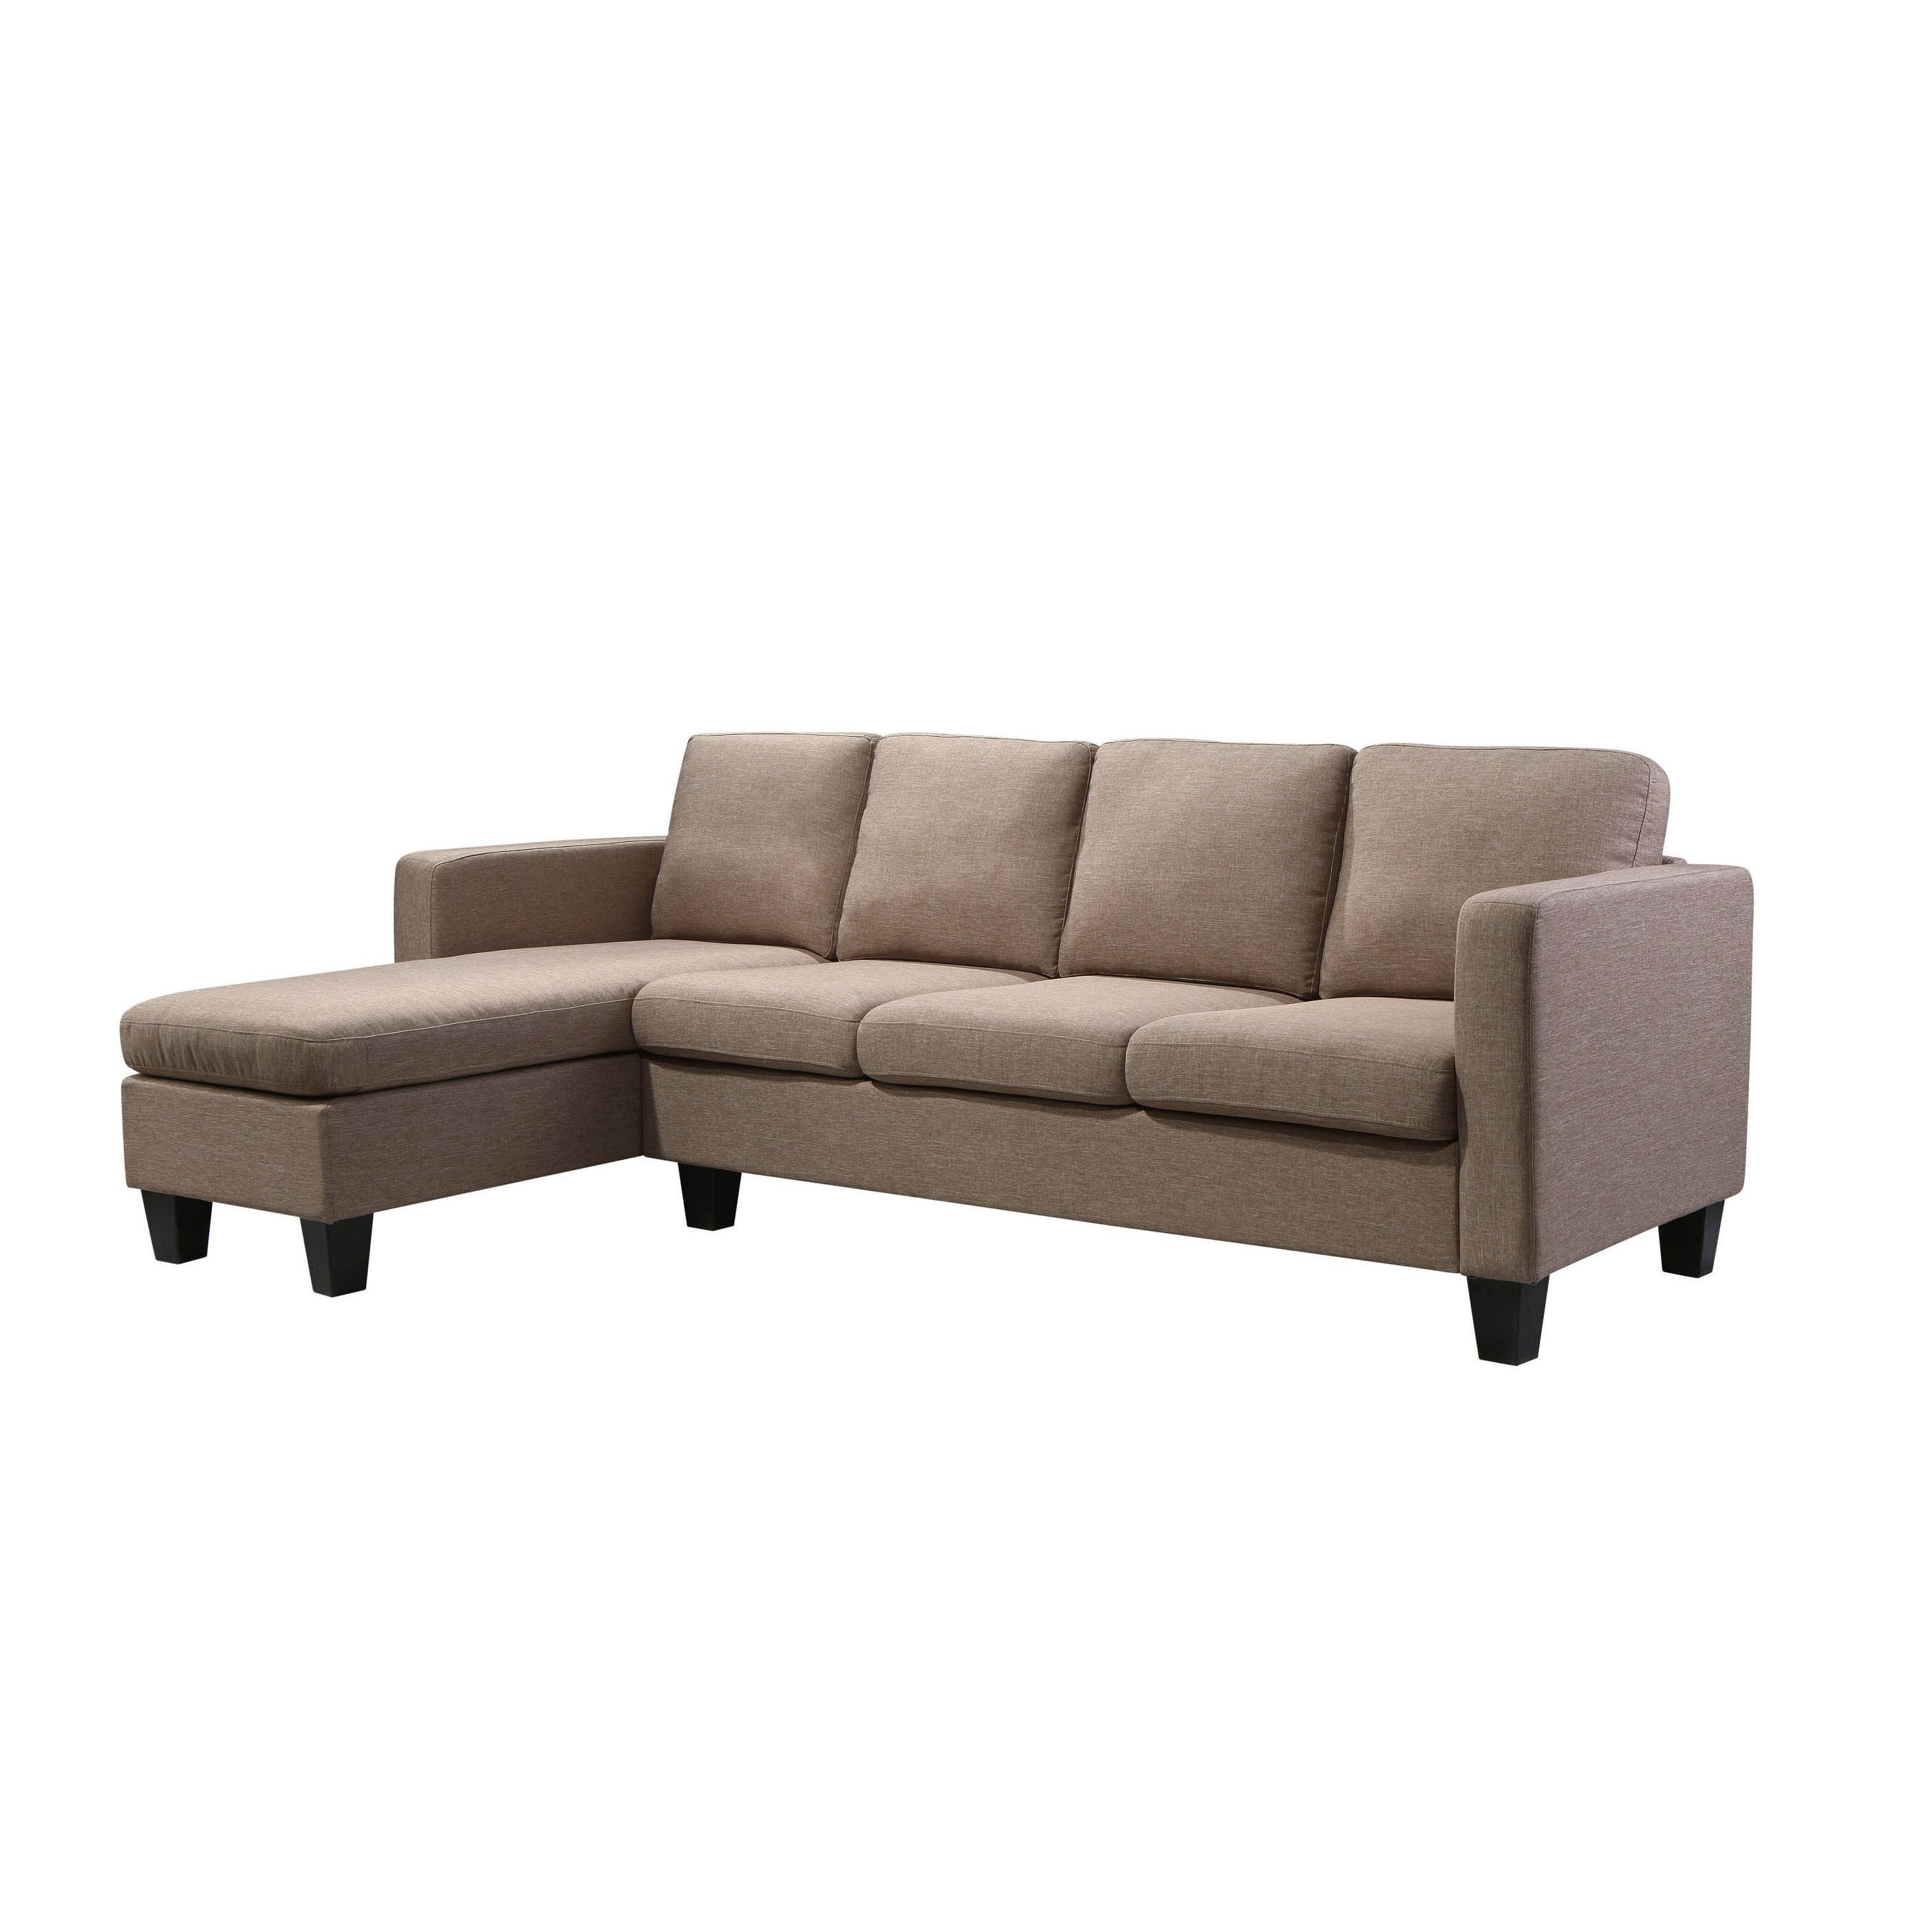 Current Shop Kinnect Park 3 Seat W/chaise – Free Shipping Today – Overstock In Collins Sofa Sectionals With Reversible Chaise (Gallery 13 of 20)